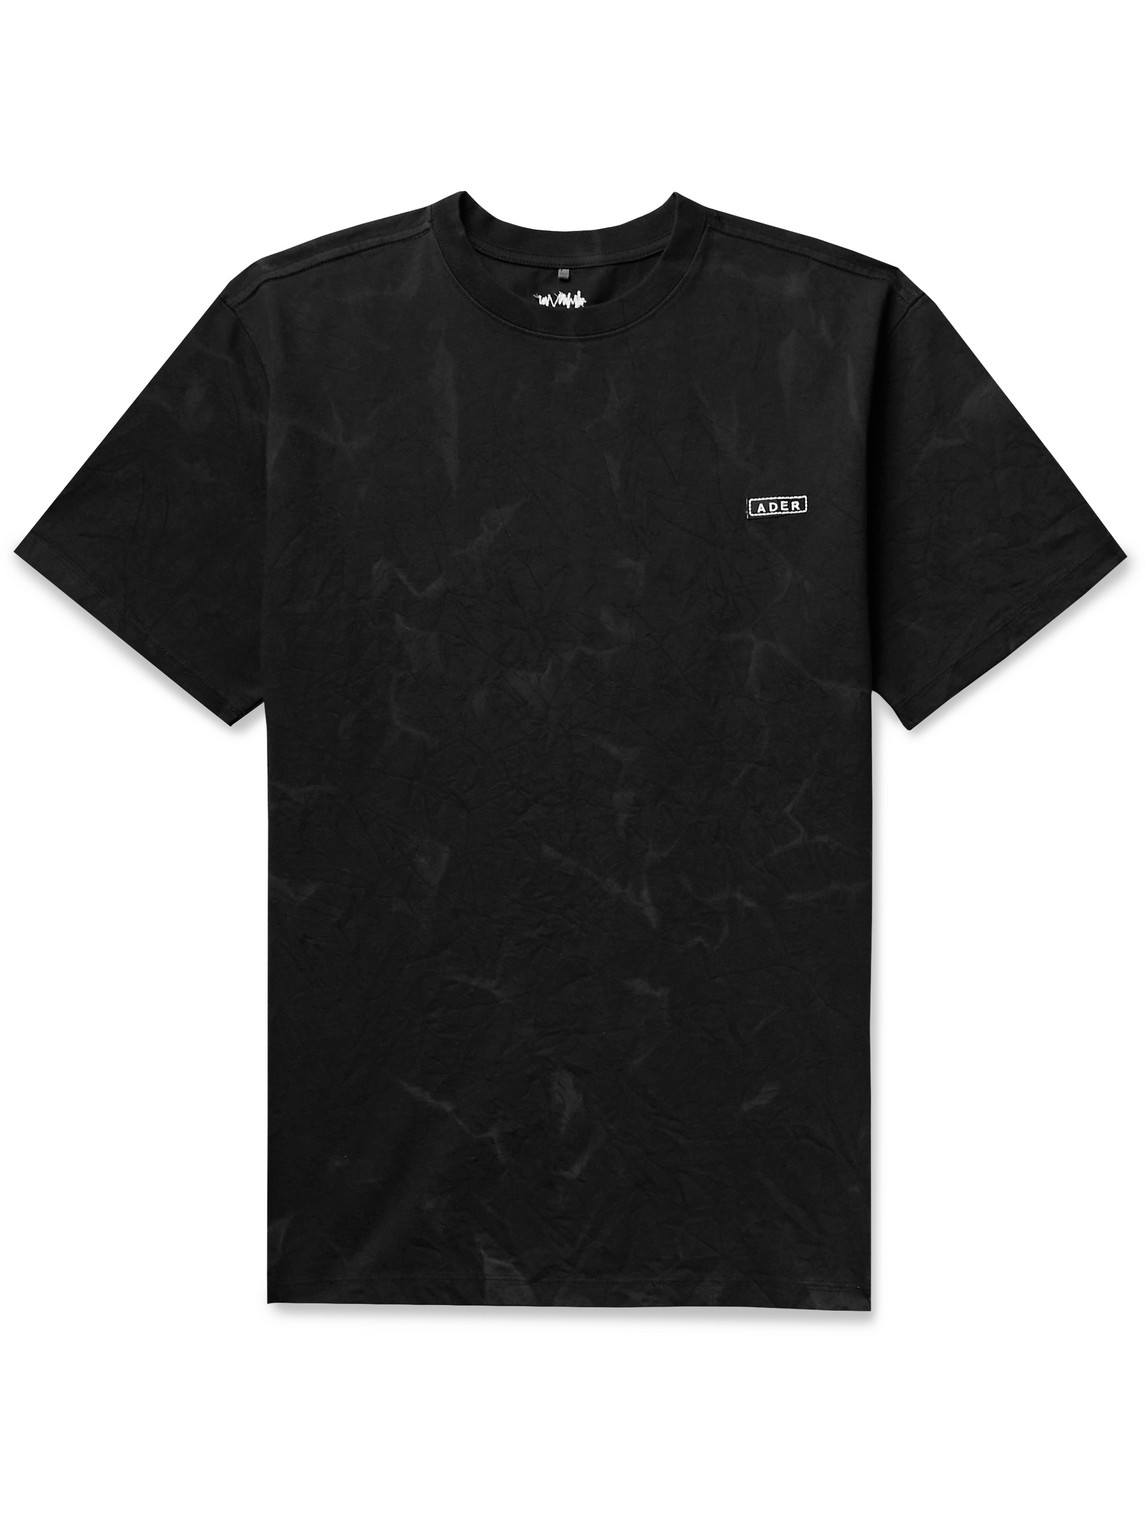 Ader Error Cottons LOGO-EMBROIDERED PRINTED COTTON-BLEND JERSEY T-SHIRT